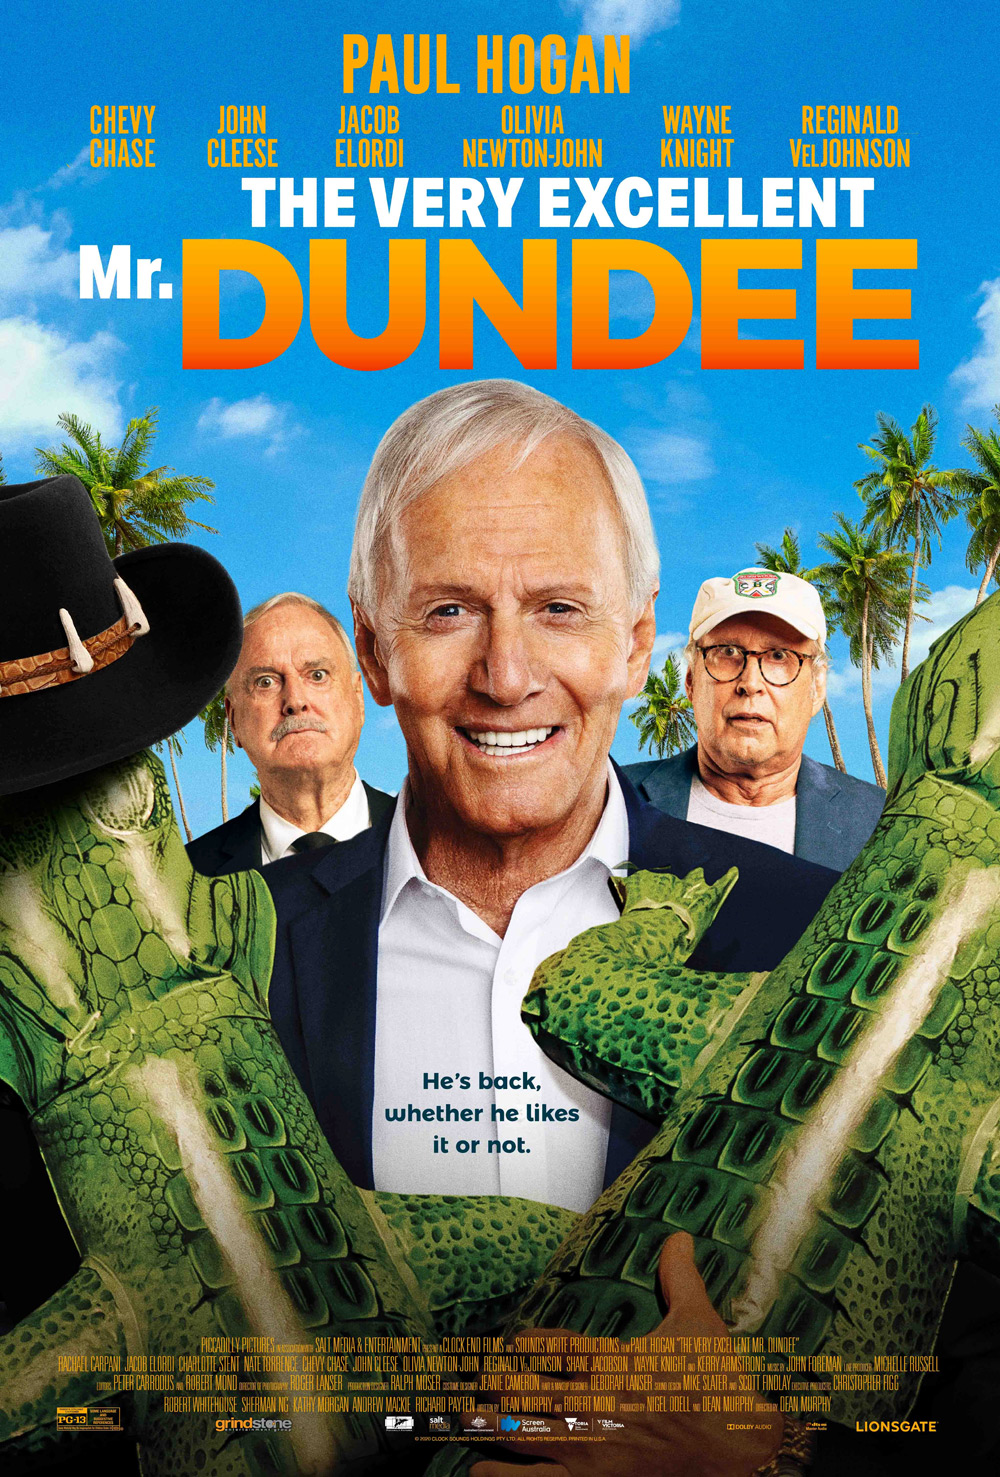 Paul Hogan Returns Again In The Very Excellent Mr Dundee Trailer Firstshowing Net In 2020 Paul Hogan New Movie Posters Dundee